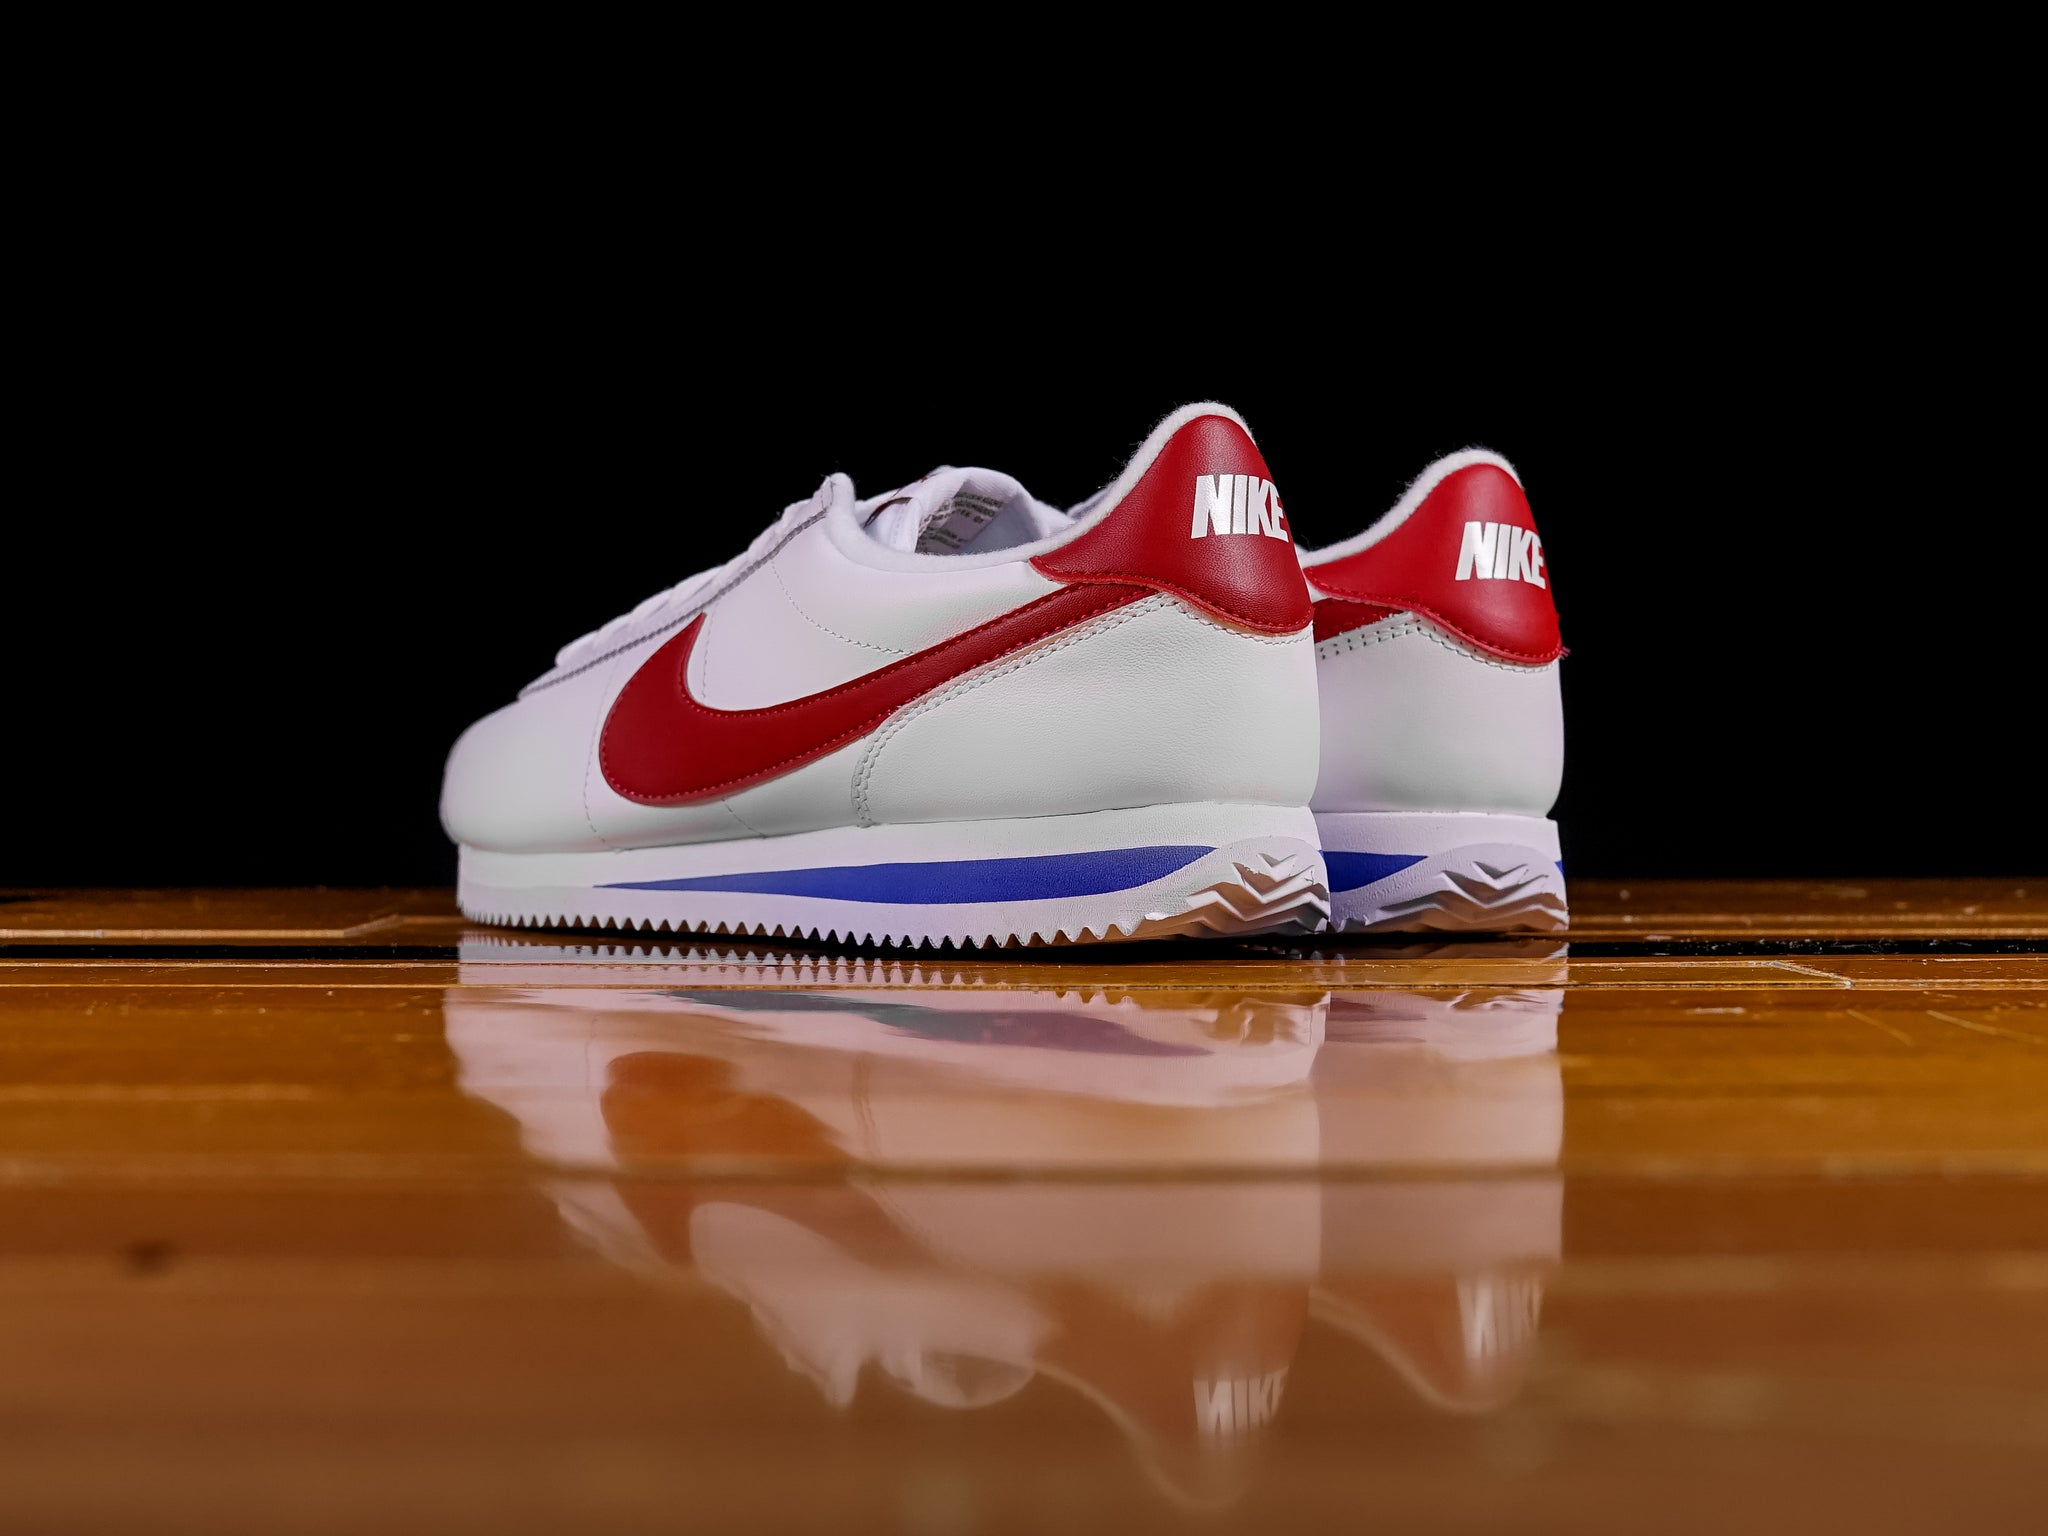 separation shoes f0837 6dd87 Men's Nike Cortez Leather OG 'Forrest Gump' [882254-164]